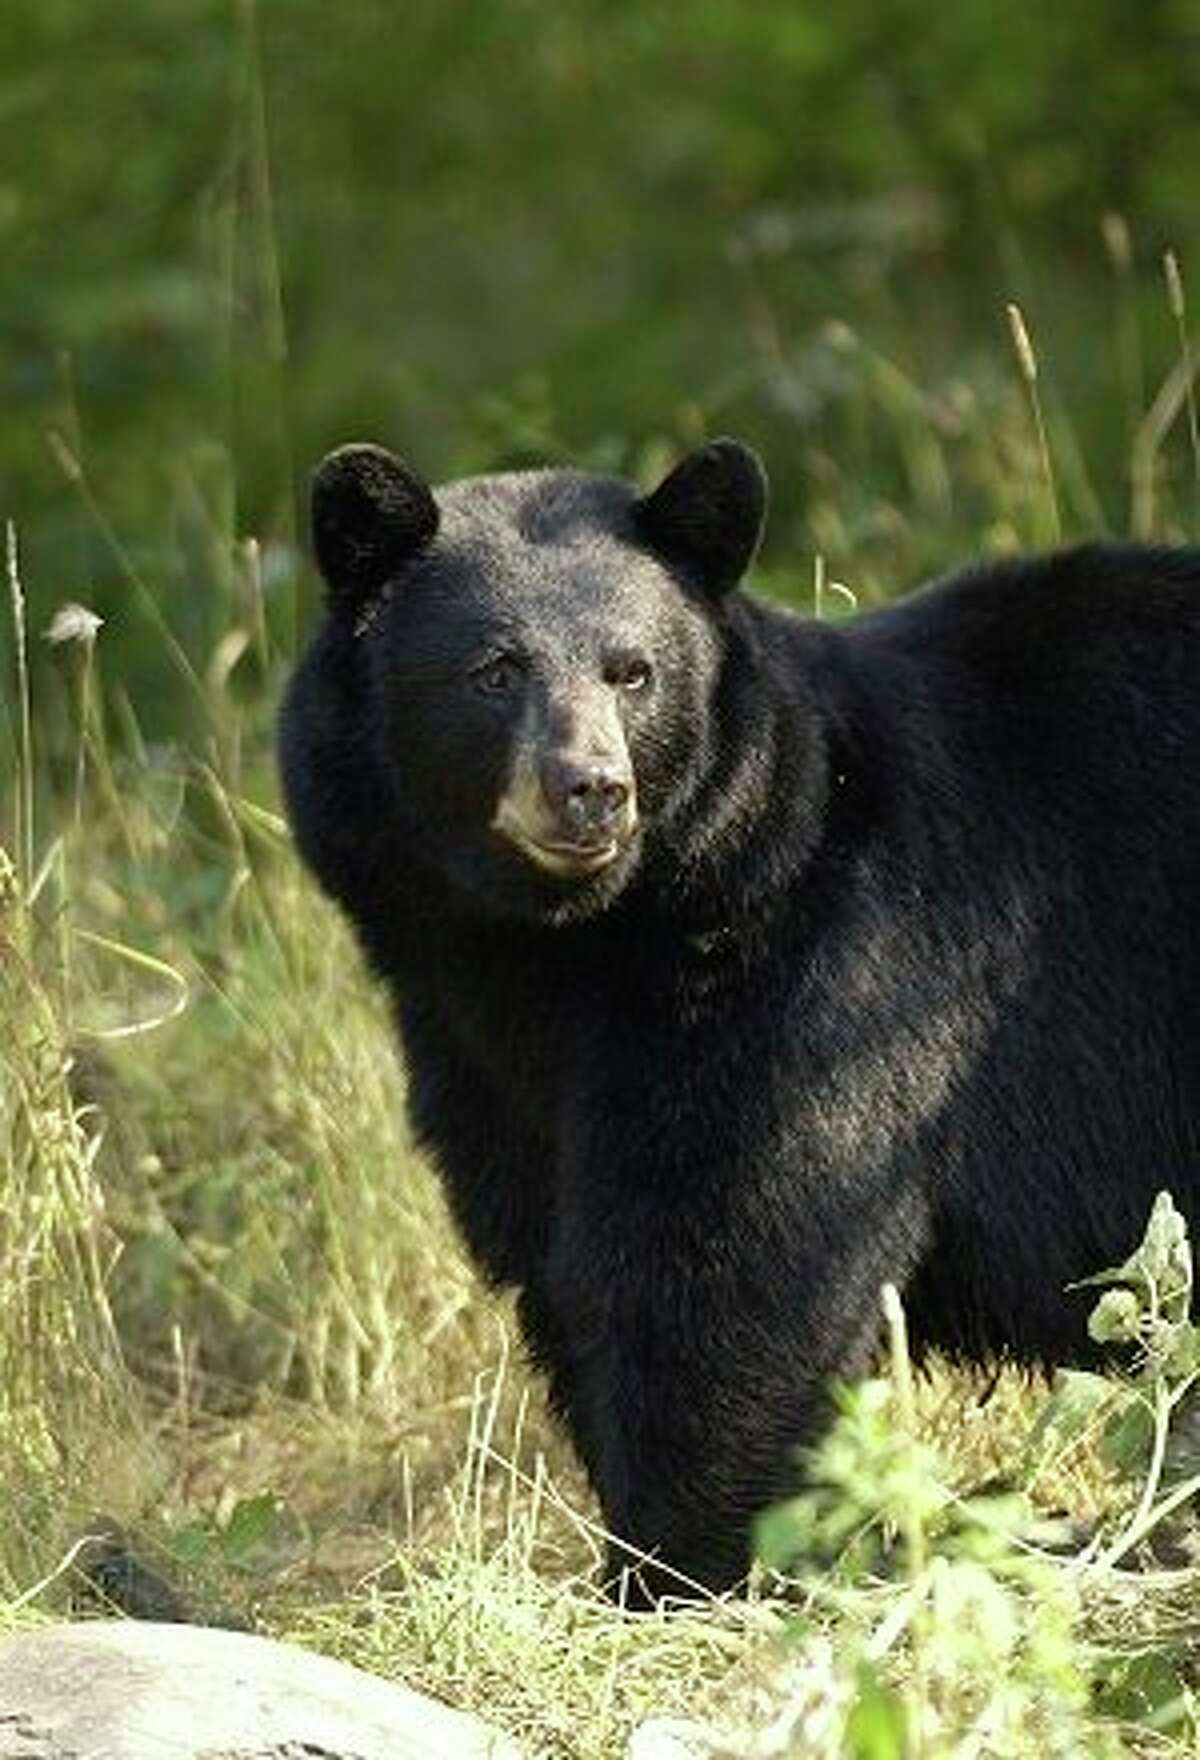 Black bears will be looking for food sources as it gets warmer. (DNR file photo)